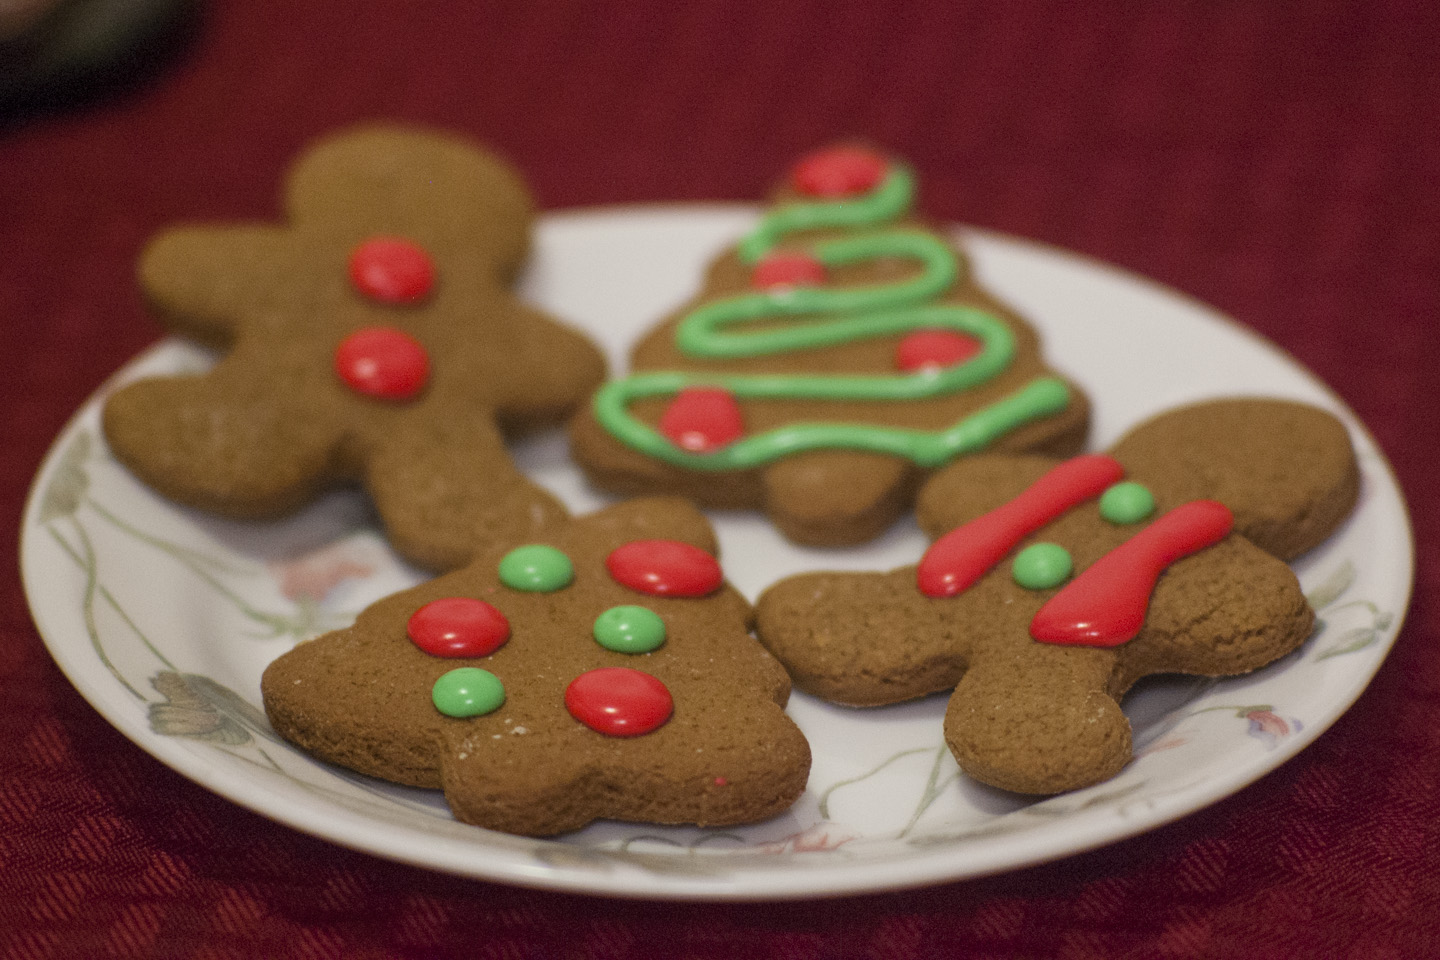 Spice up Christmas with gingerbread